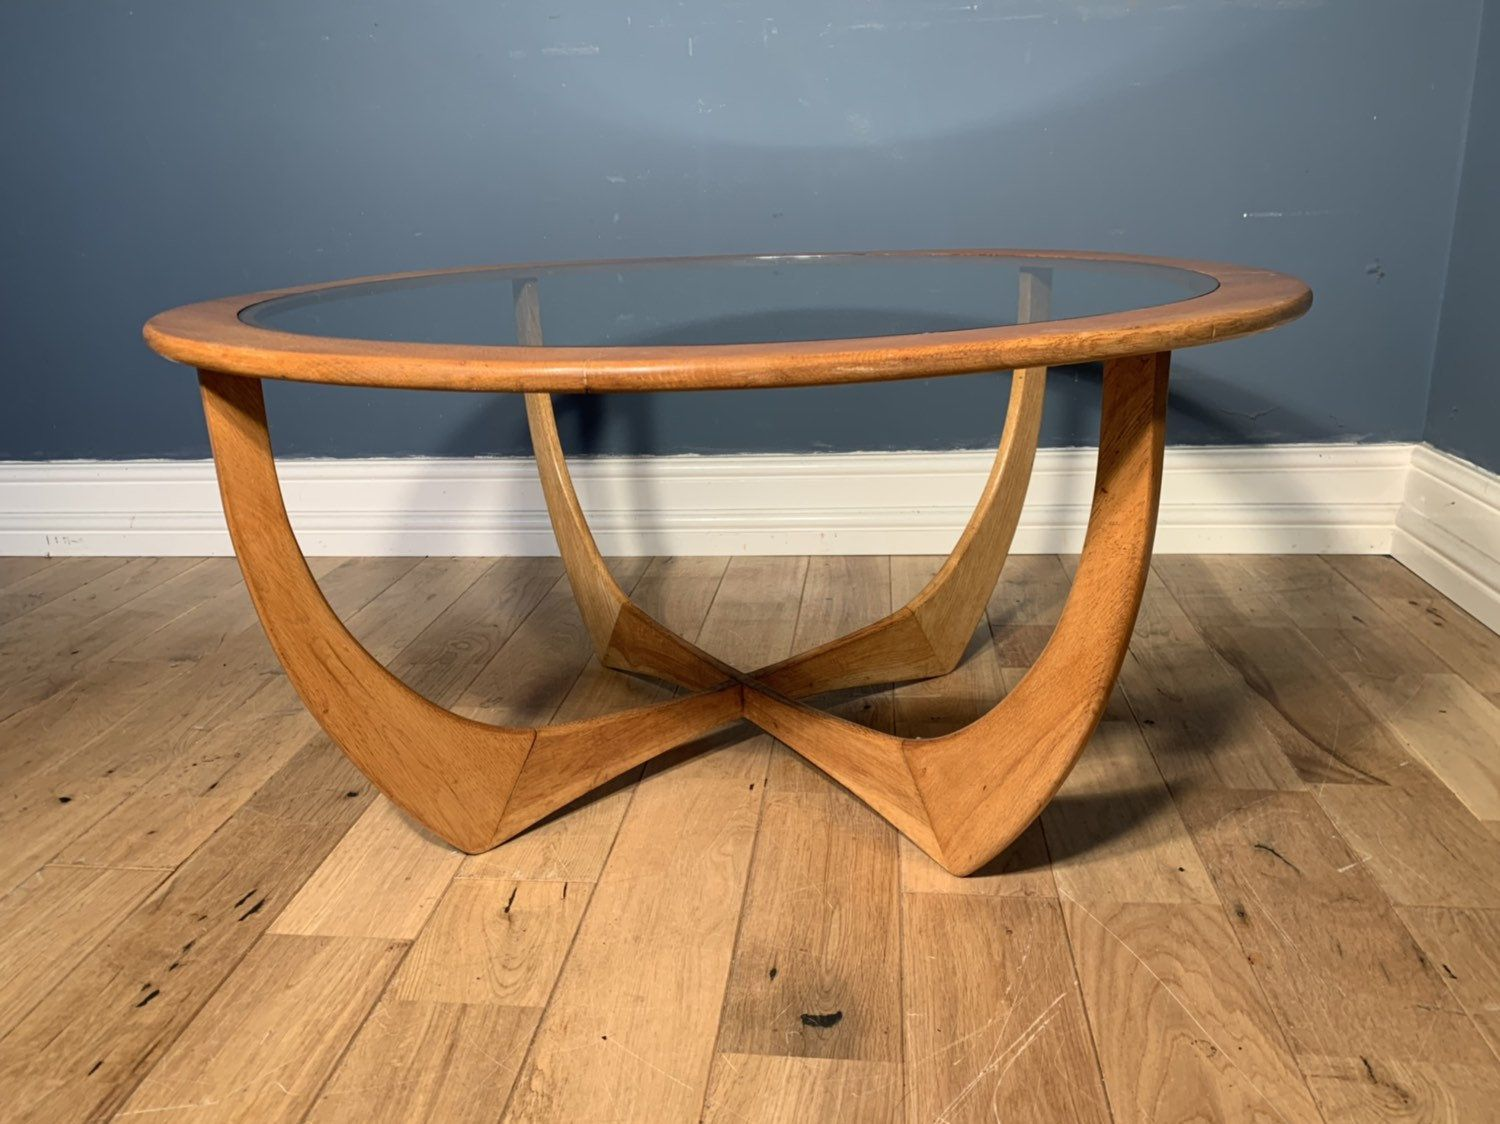 Excited To Share The Latest Addition To My Etsy Shop G Plan Astro Teak And Glass Coffee Table Https Etsy Me 31shbdj Fu Glass Coffee Table Teak Frame Teak [ 1124 x 1500 Pixel ]